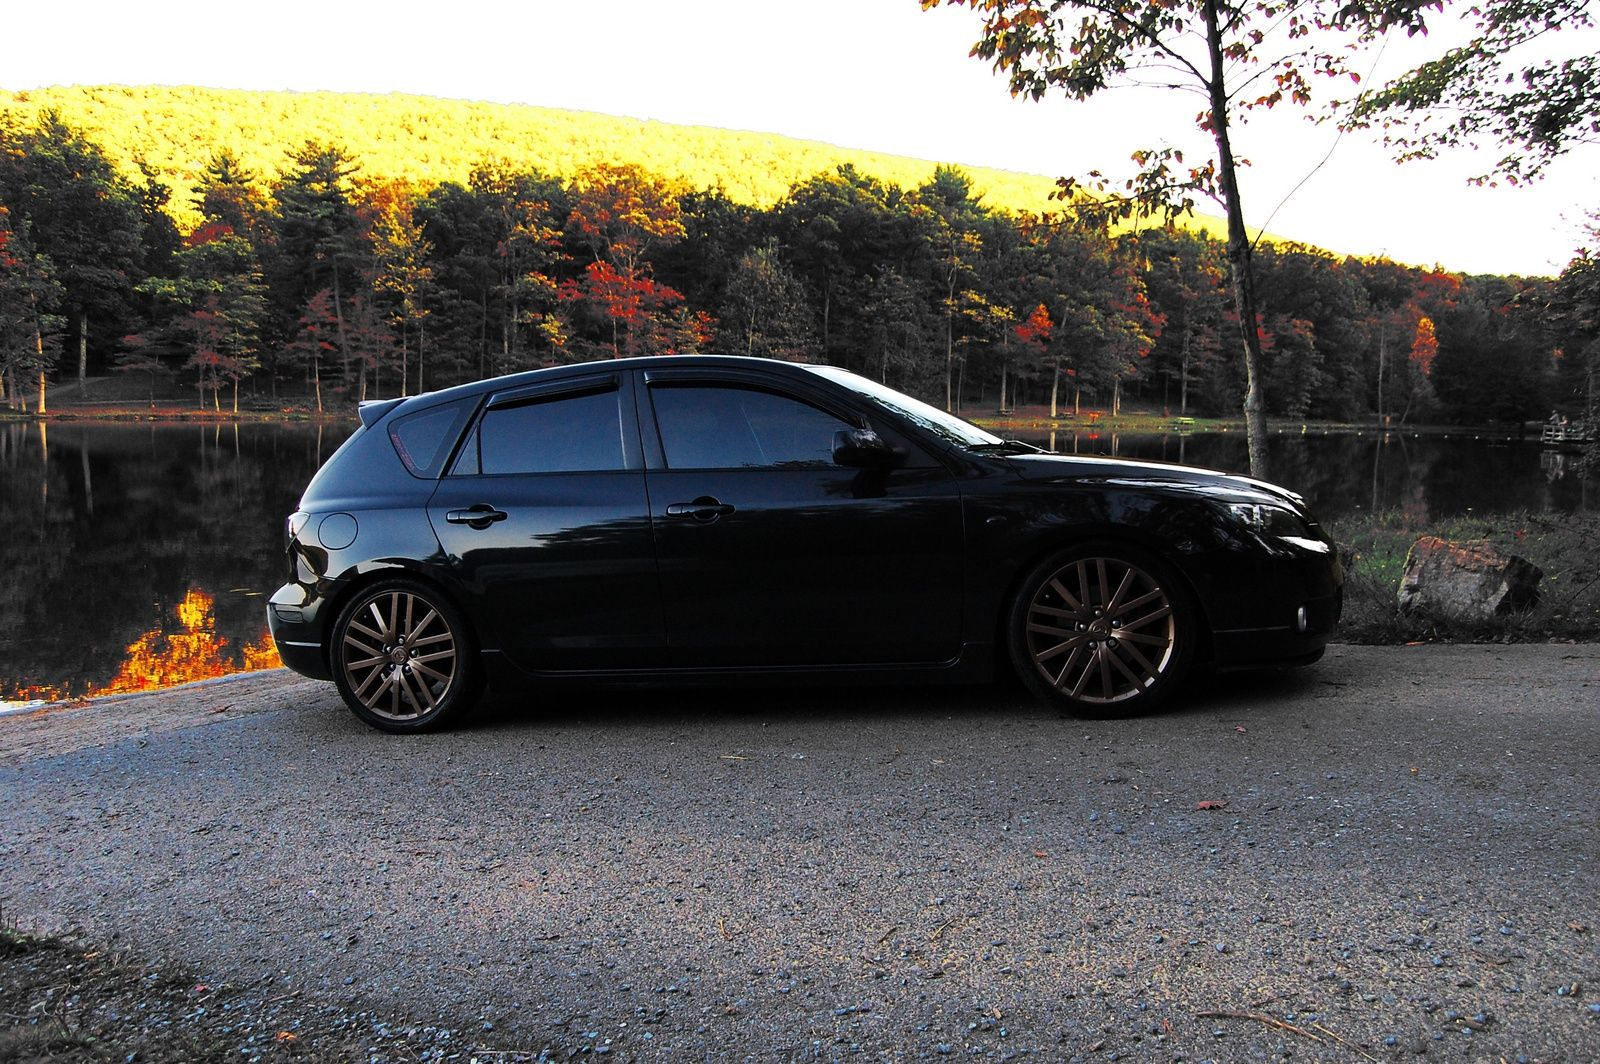 2005 mazda mazda3 s hatchback picture exterior carzzz. Black Bedroom Furniture Sets. Home Design Ideas